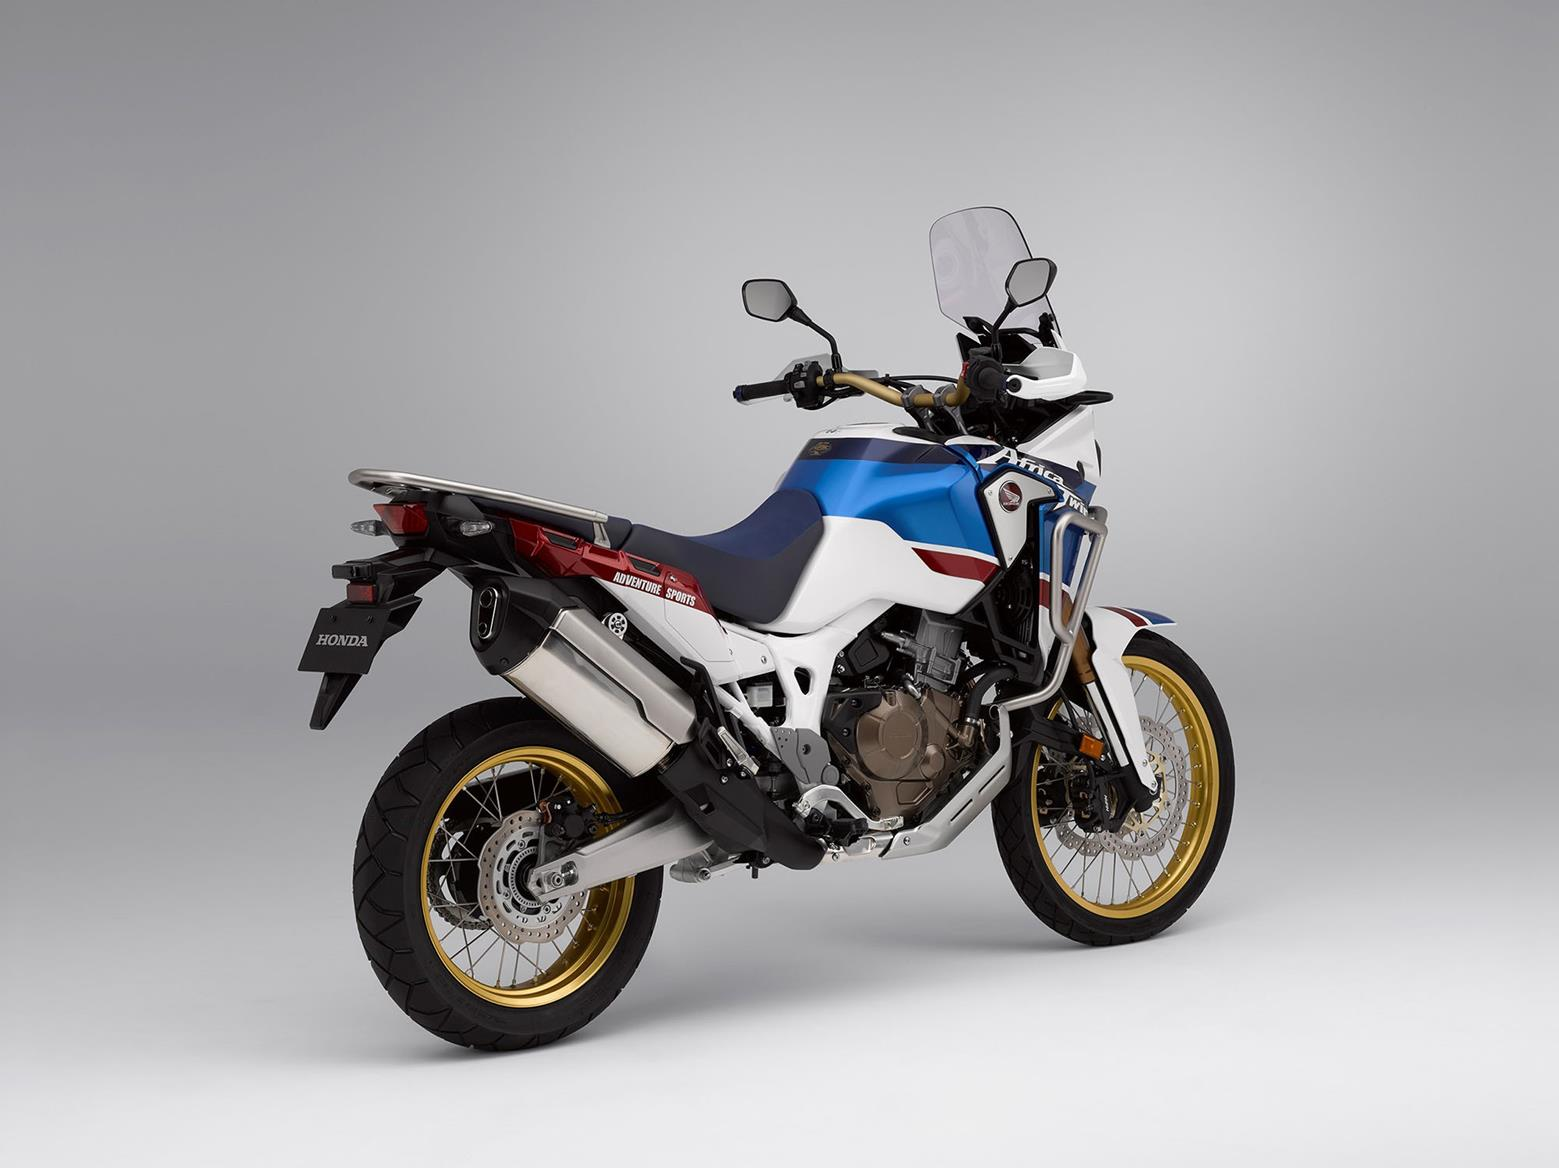 Peachy Honda Crf1000L Africa Twin Adventure Sports 2018 On Review Evergreenethics Interior Chair Design Evergreenethicsorg